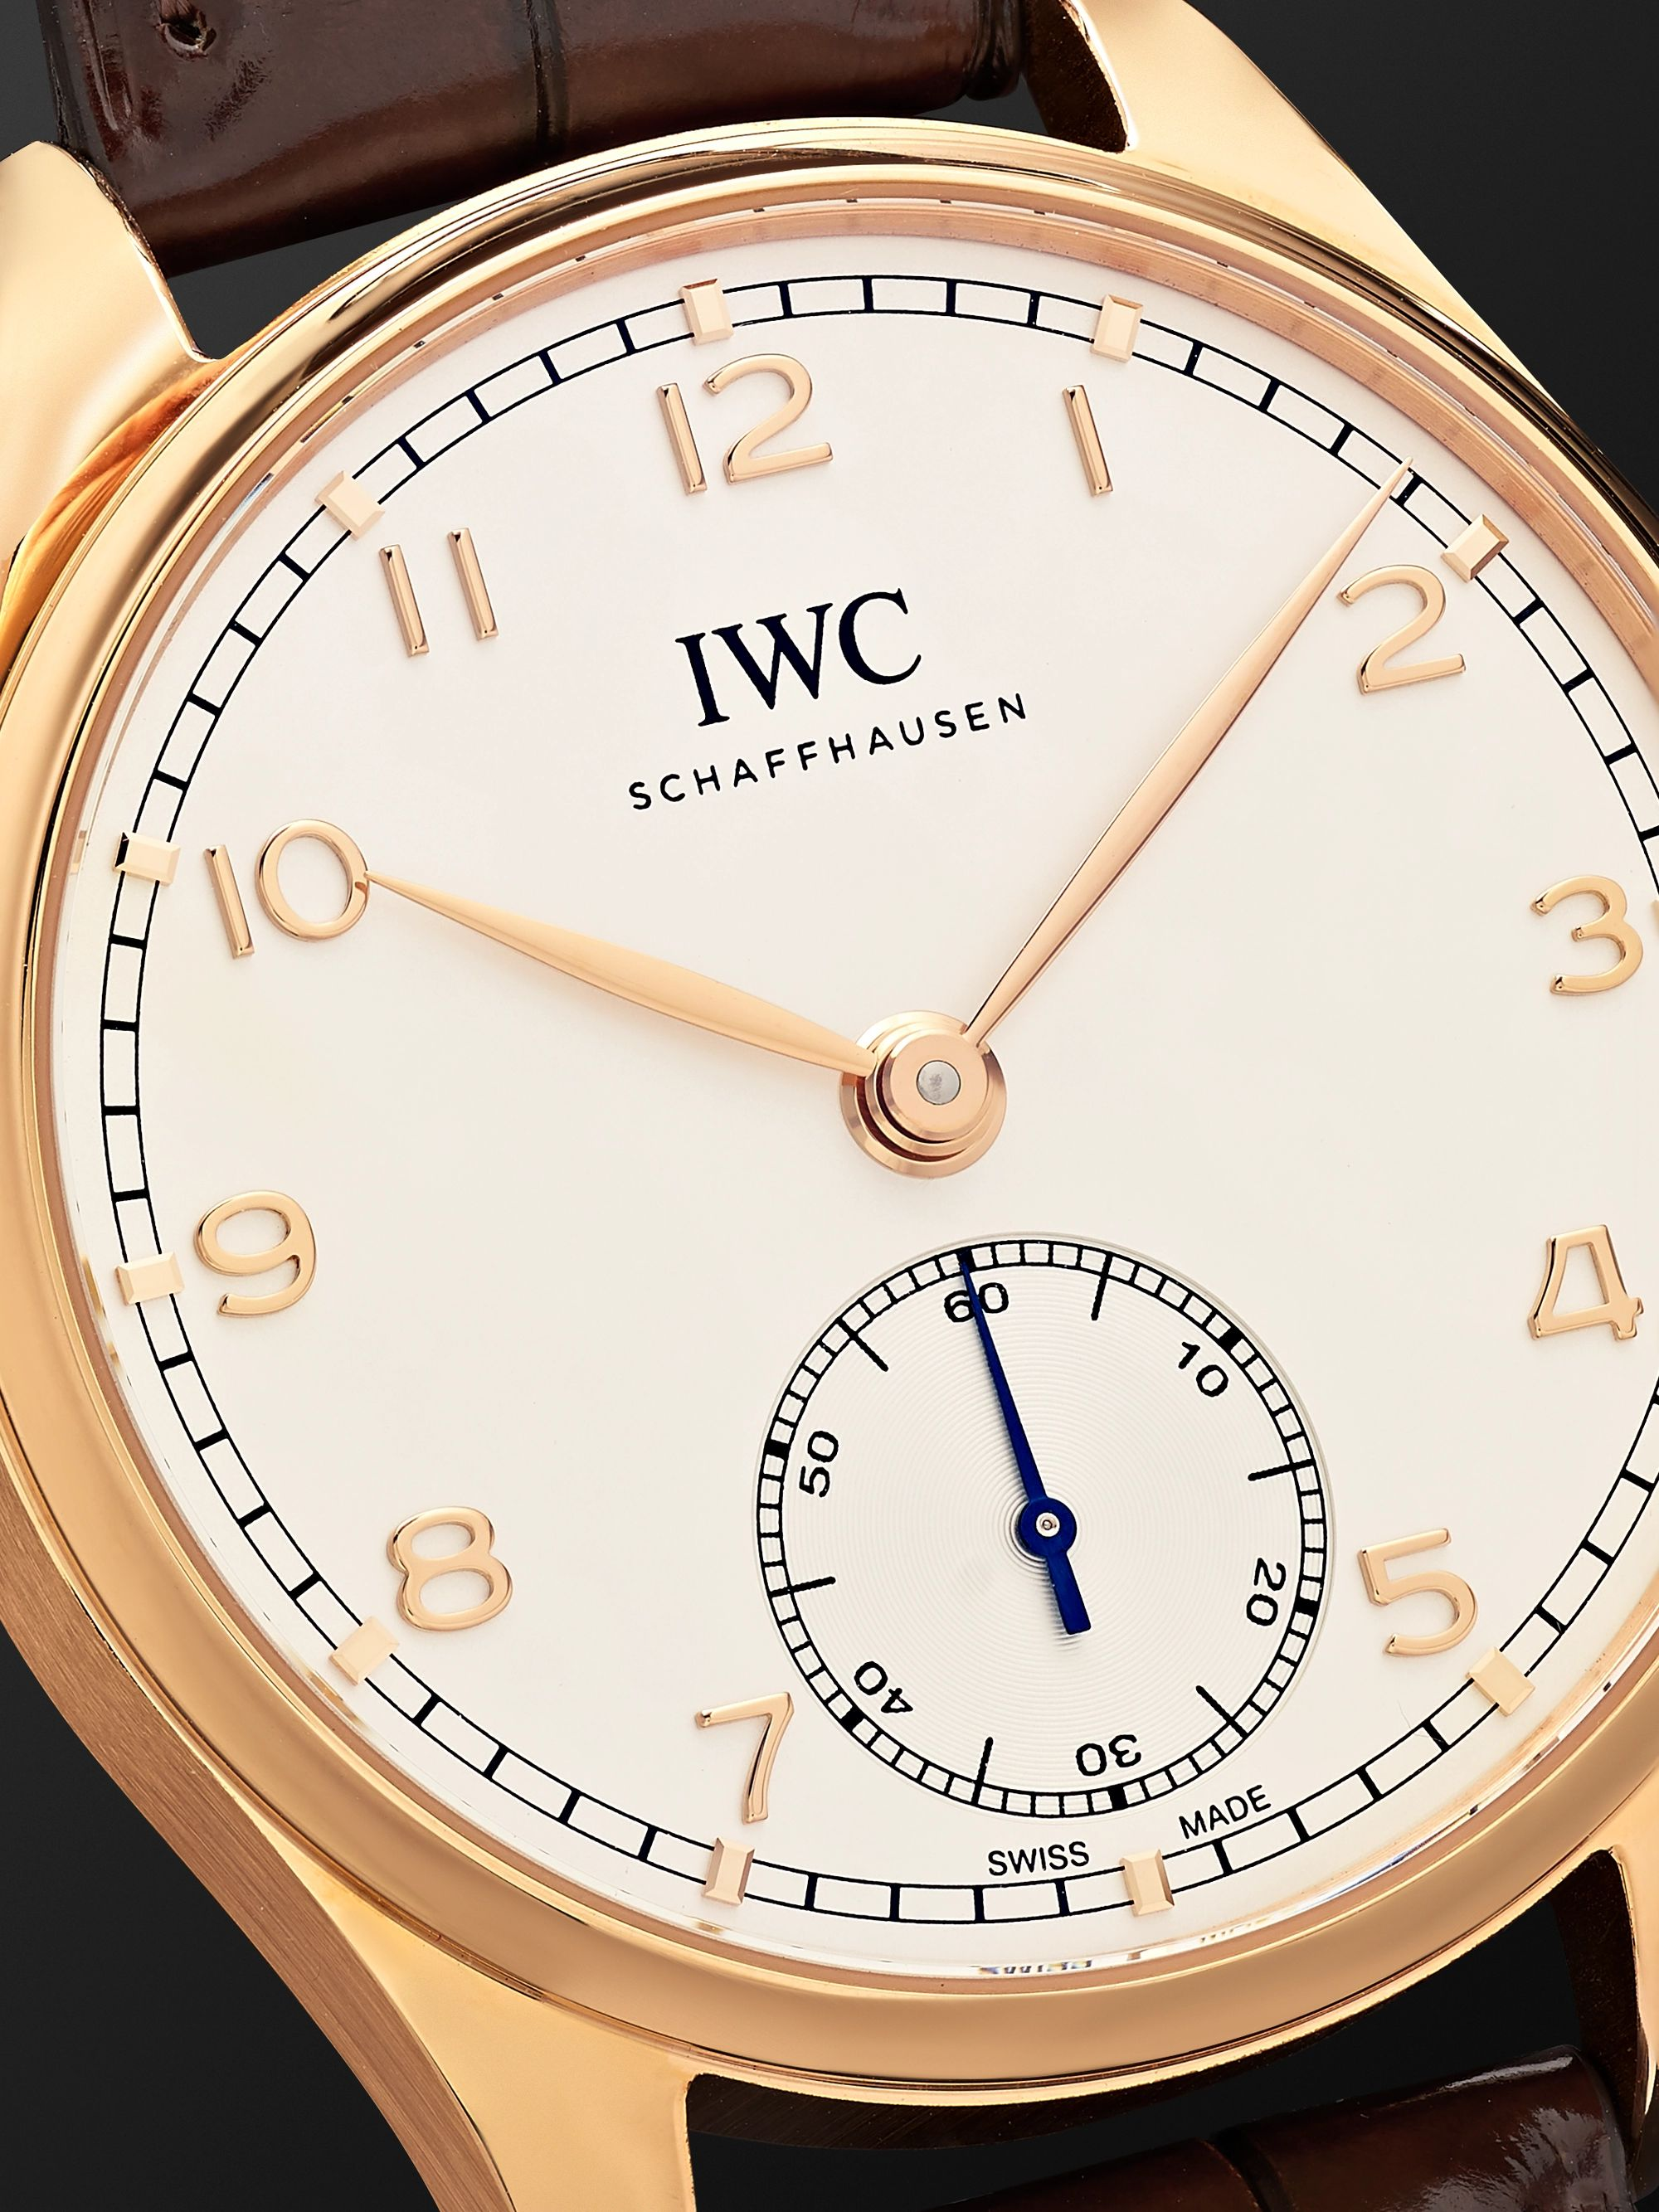 IWC SCHAFFHAUSEN Portugieser Automatic 40.4mm 18-Karat Red Gold and Alligator Watch, Ref. No. IW358306